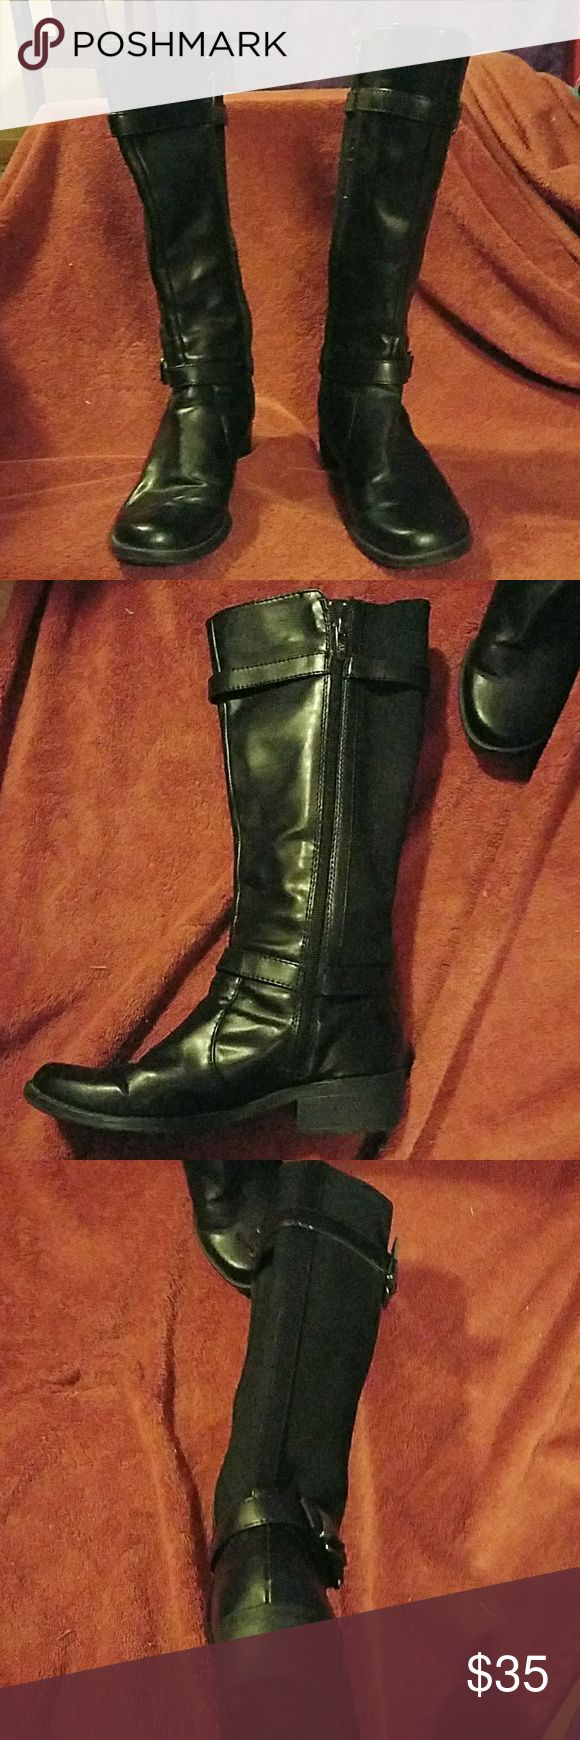 """Anne Klein Lissa Boots, size 7 Man made leather and cloth. 1"""" heels. No stains, tears or defects. Gently used. Anne Klein Shoes Winter & Rain Boots"""